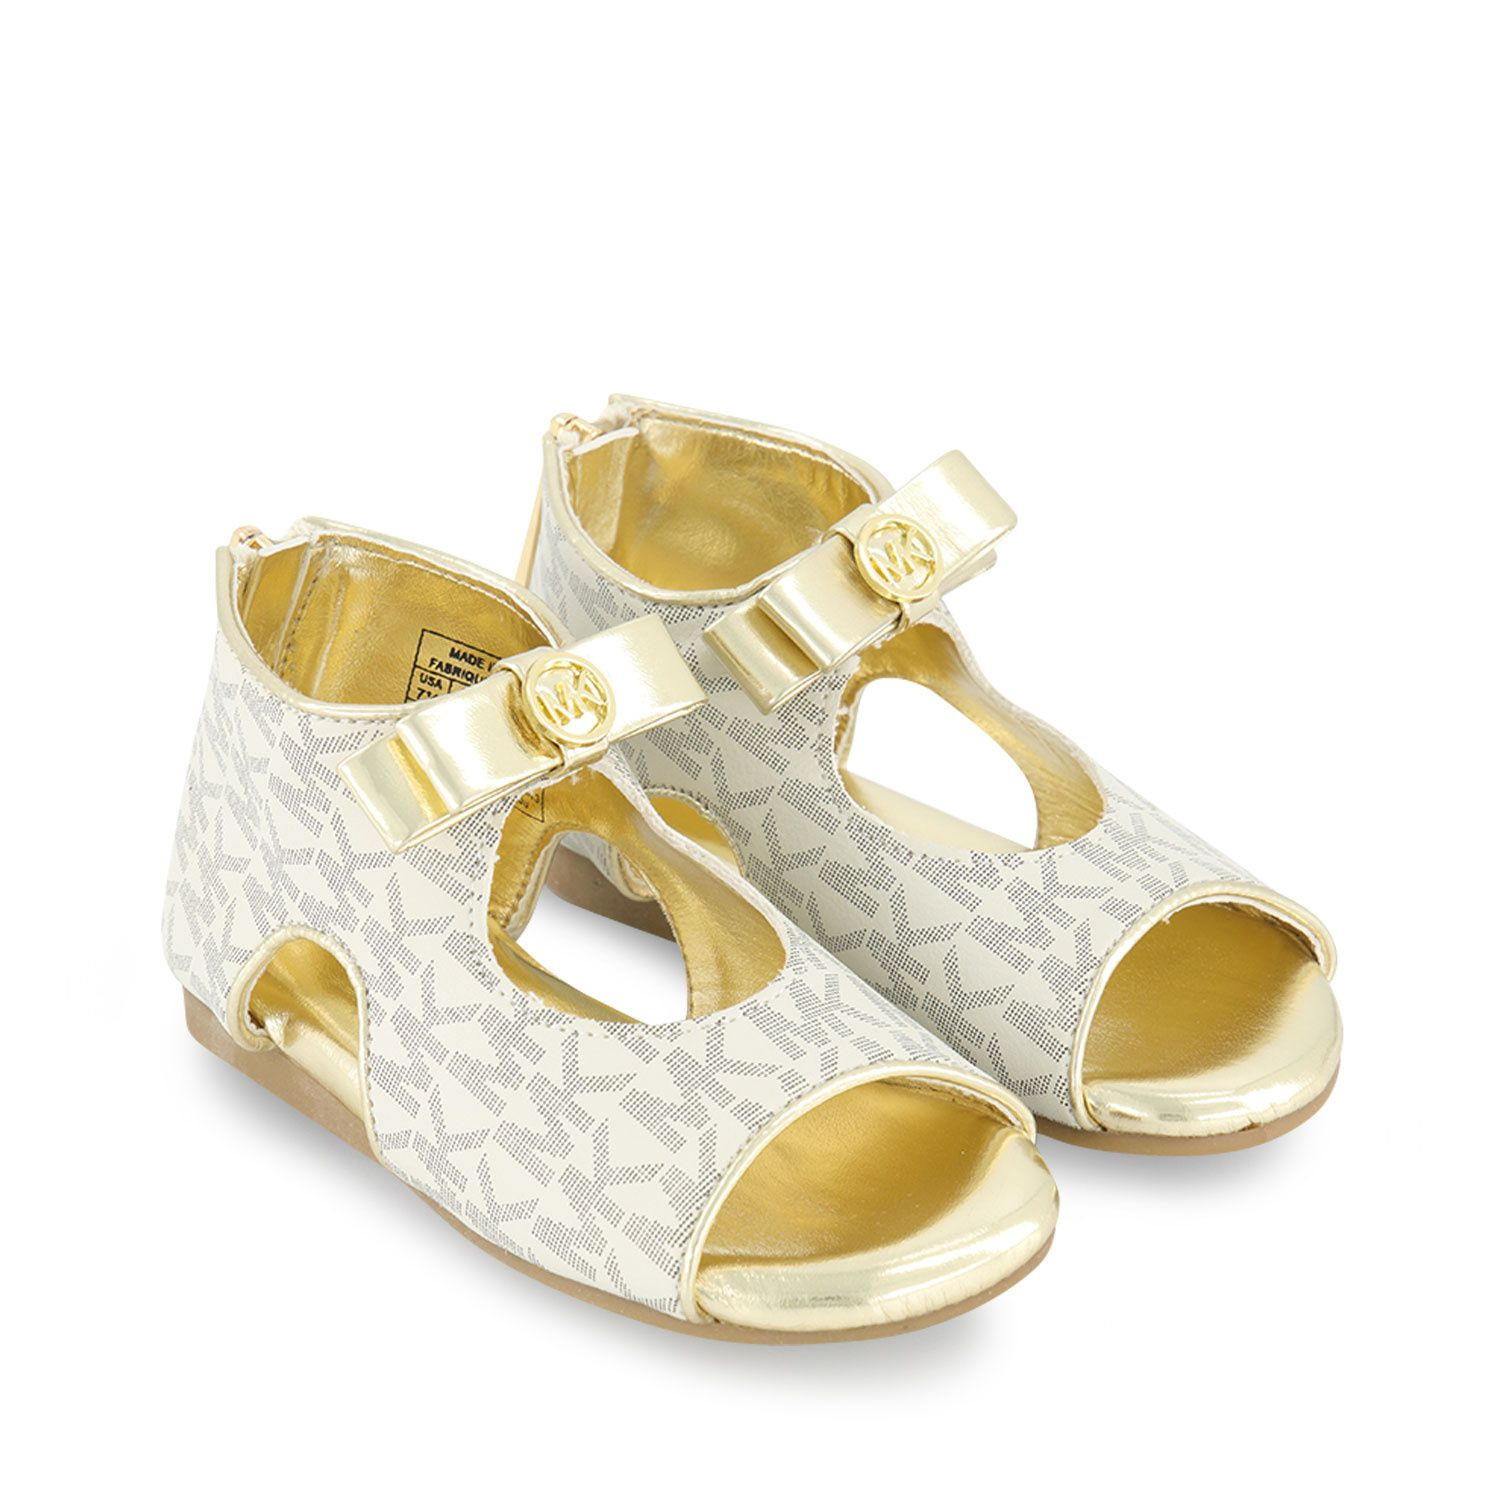 Picture of Michael Kors MK100061 kids sandals off white